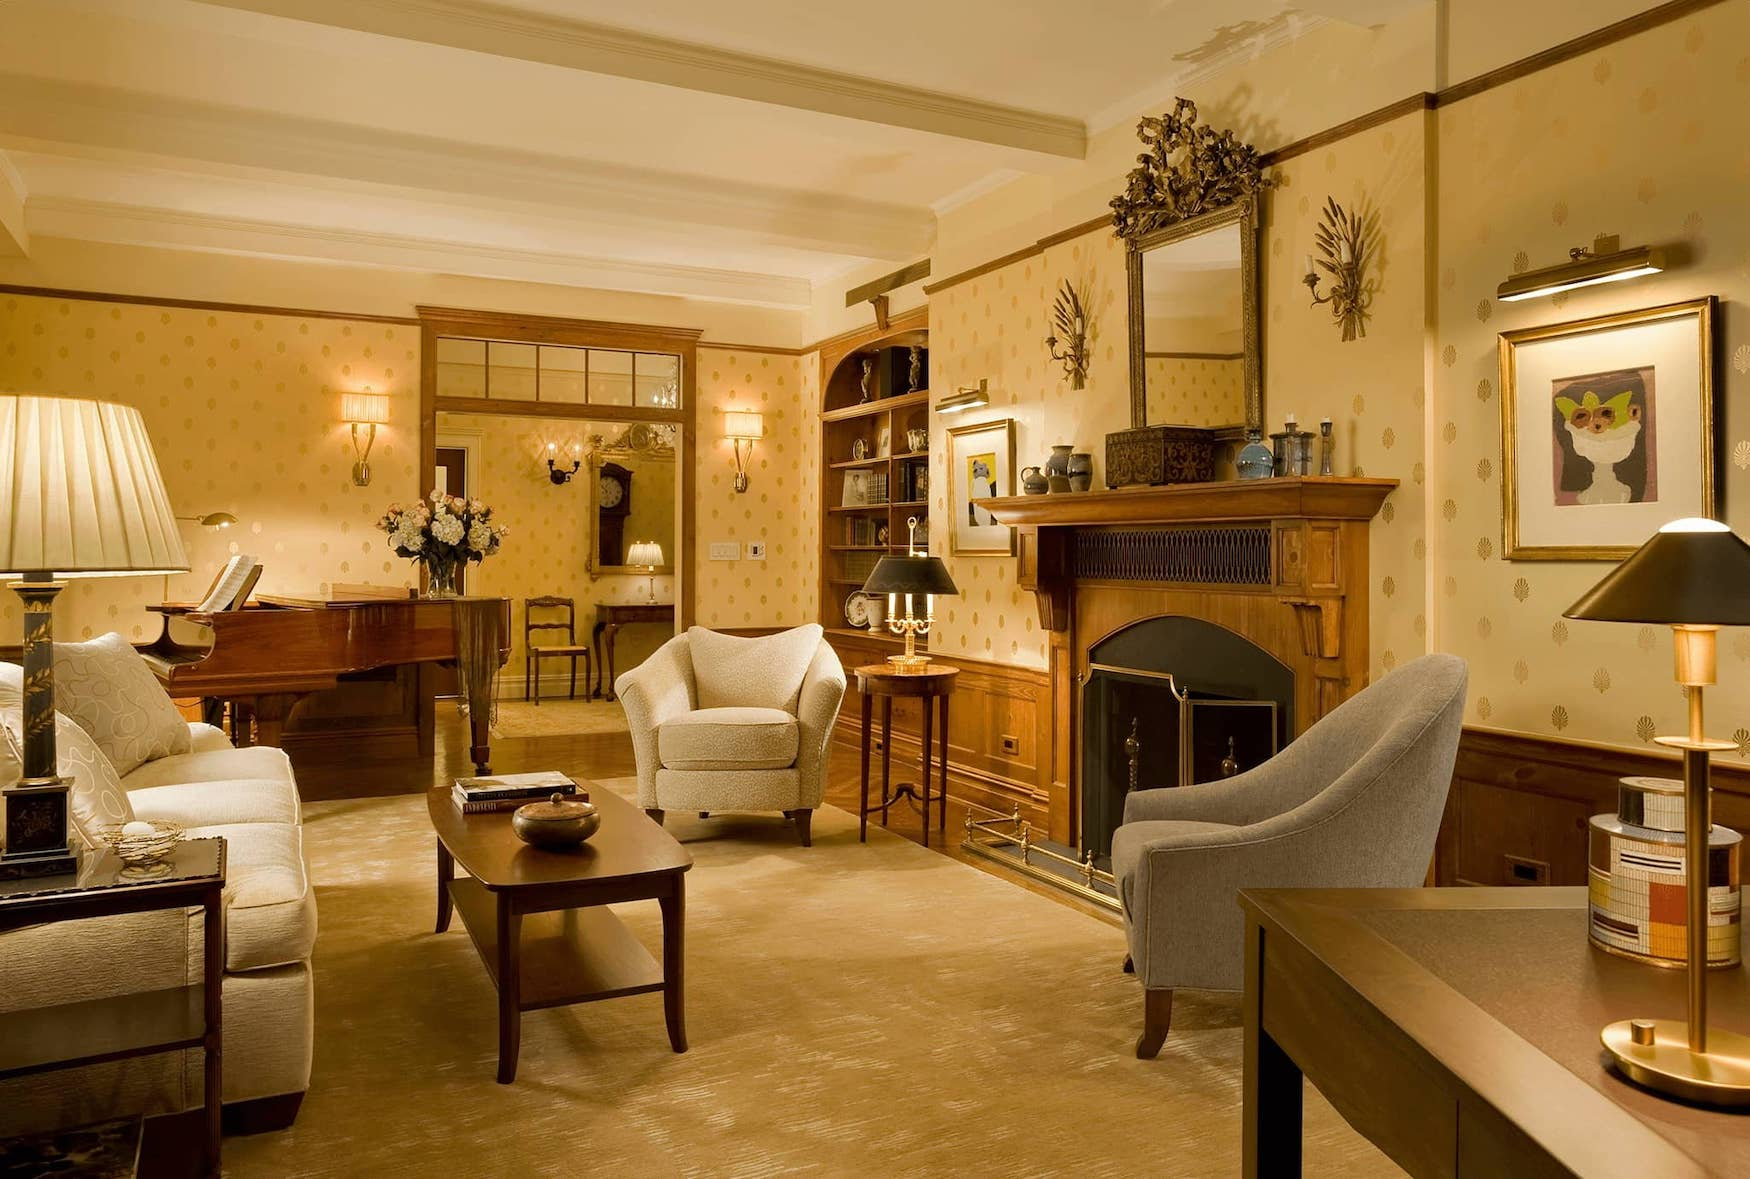 Living room with fireplace and grand piano at 101 Central Park West.